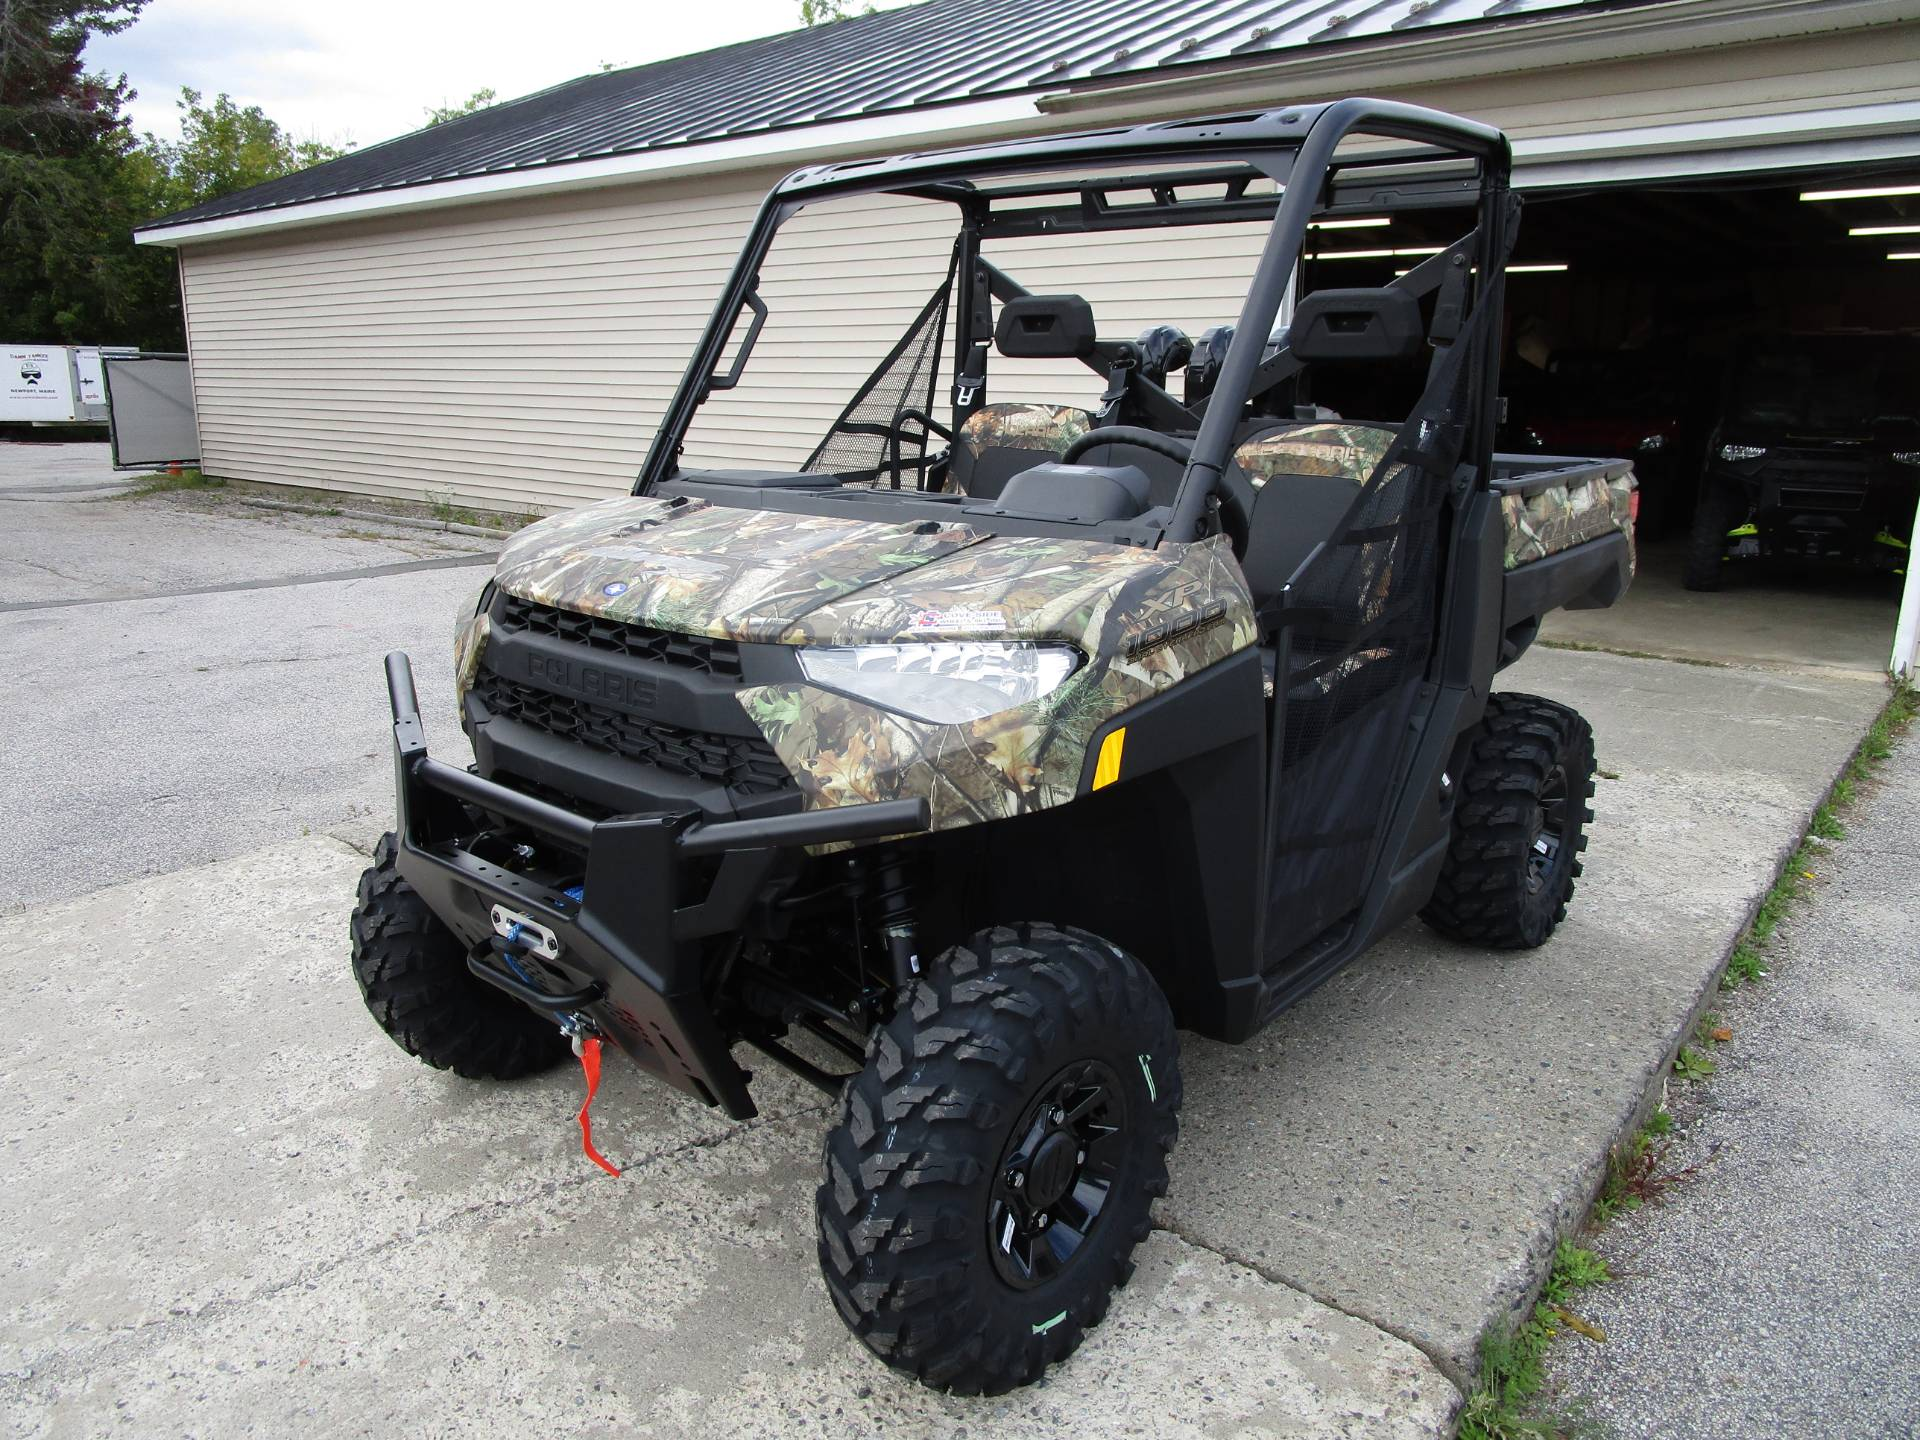 2019 Polaris RANGER XP 1000 BACK COUNTRY CAMO LIMITED EDITION in Newport, Maine - Photo 2